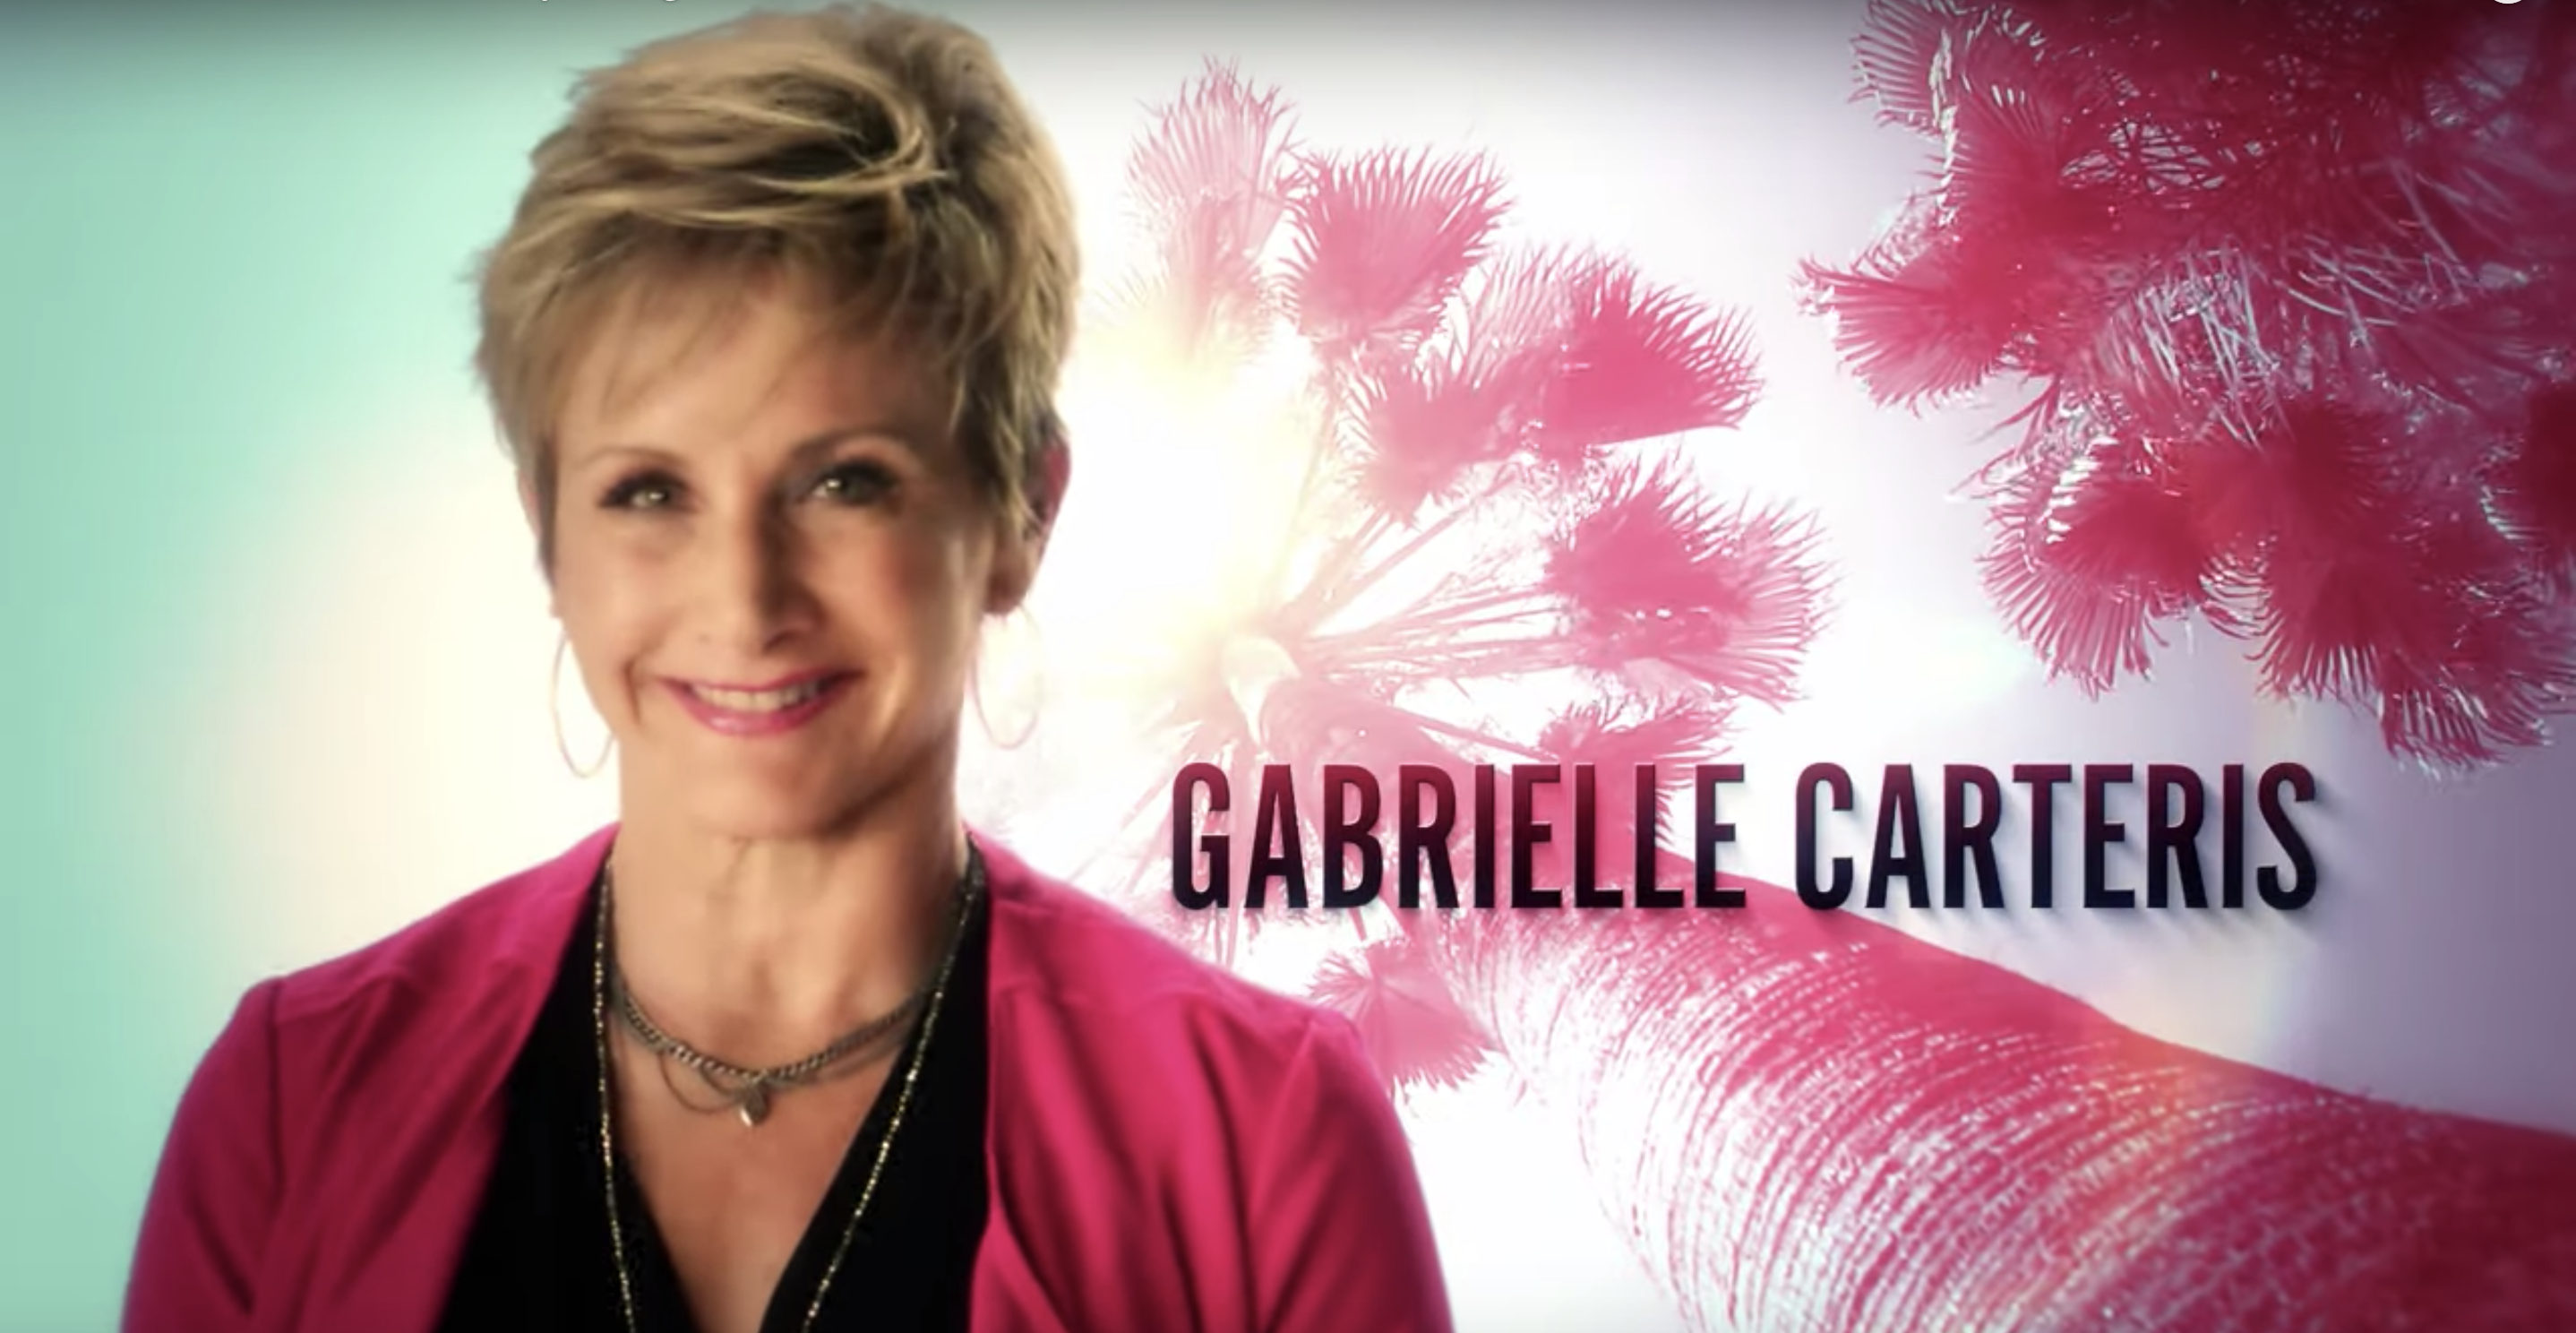 Gabrielle carteris nude, charlie sweets naked gif